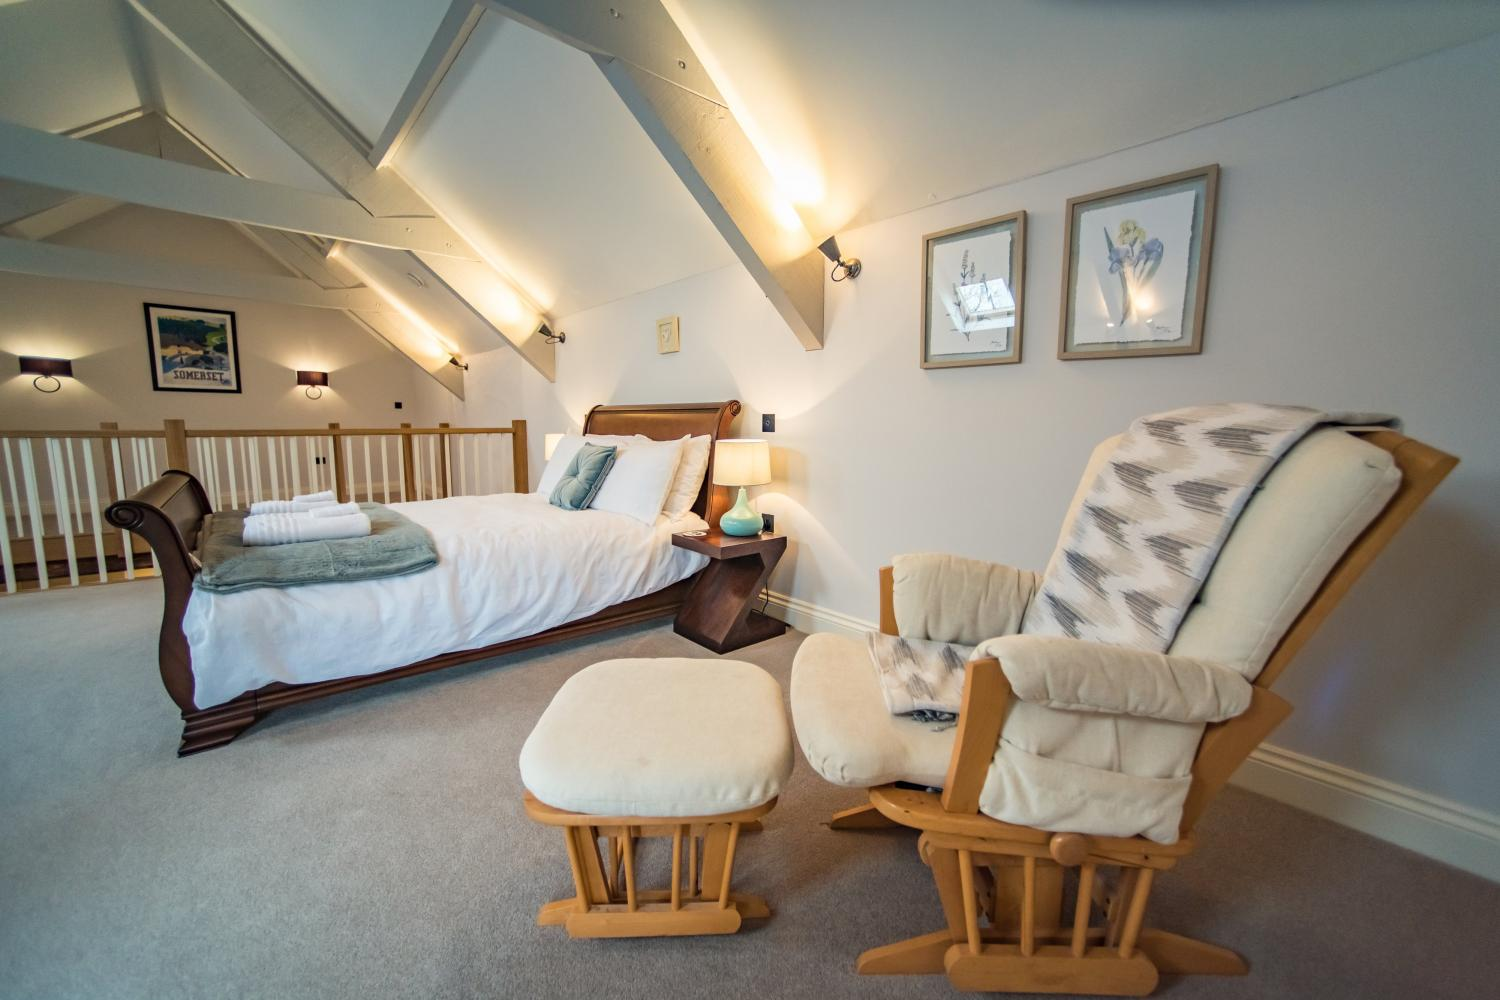 The Cowshed double sleigh bed